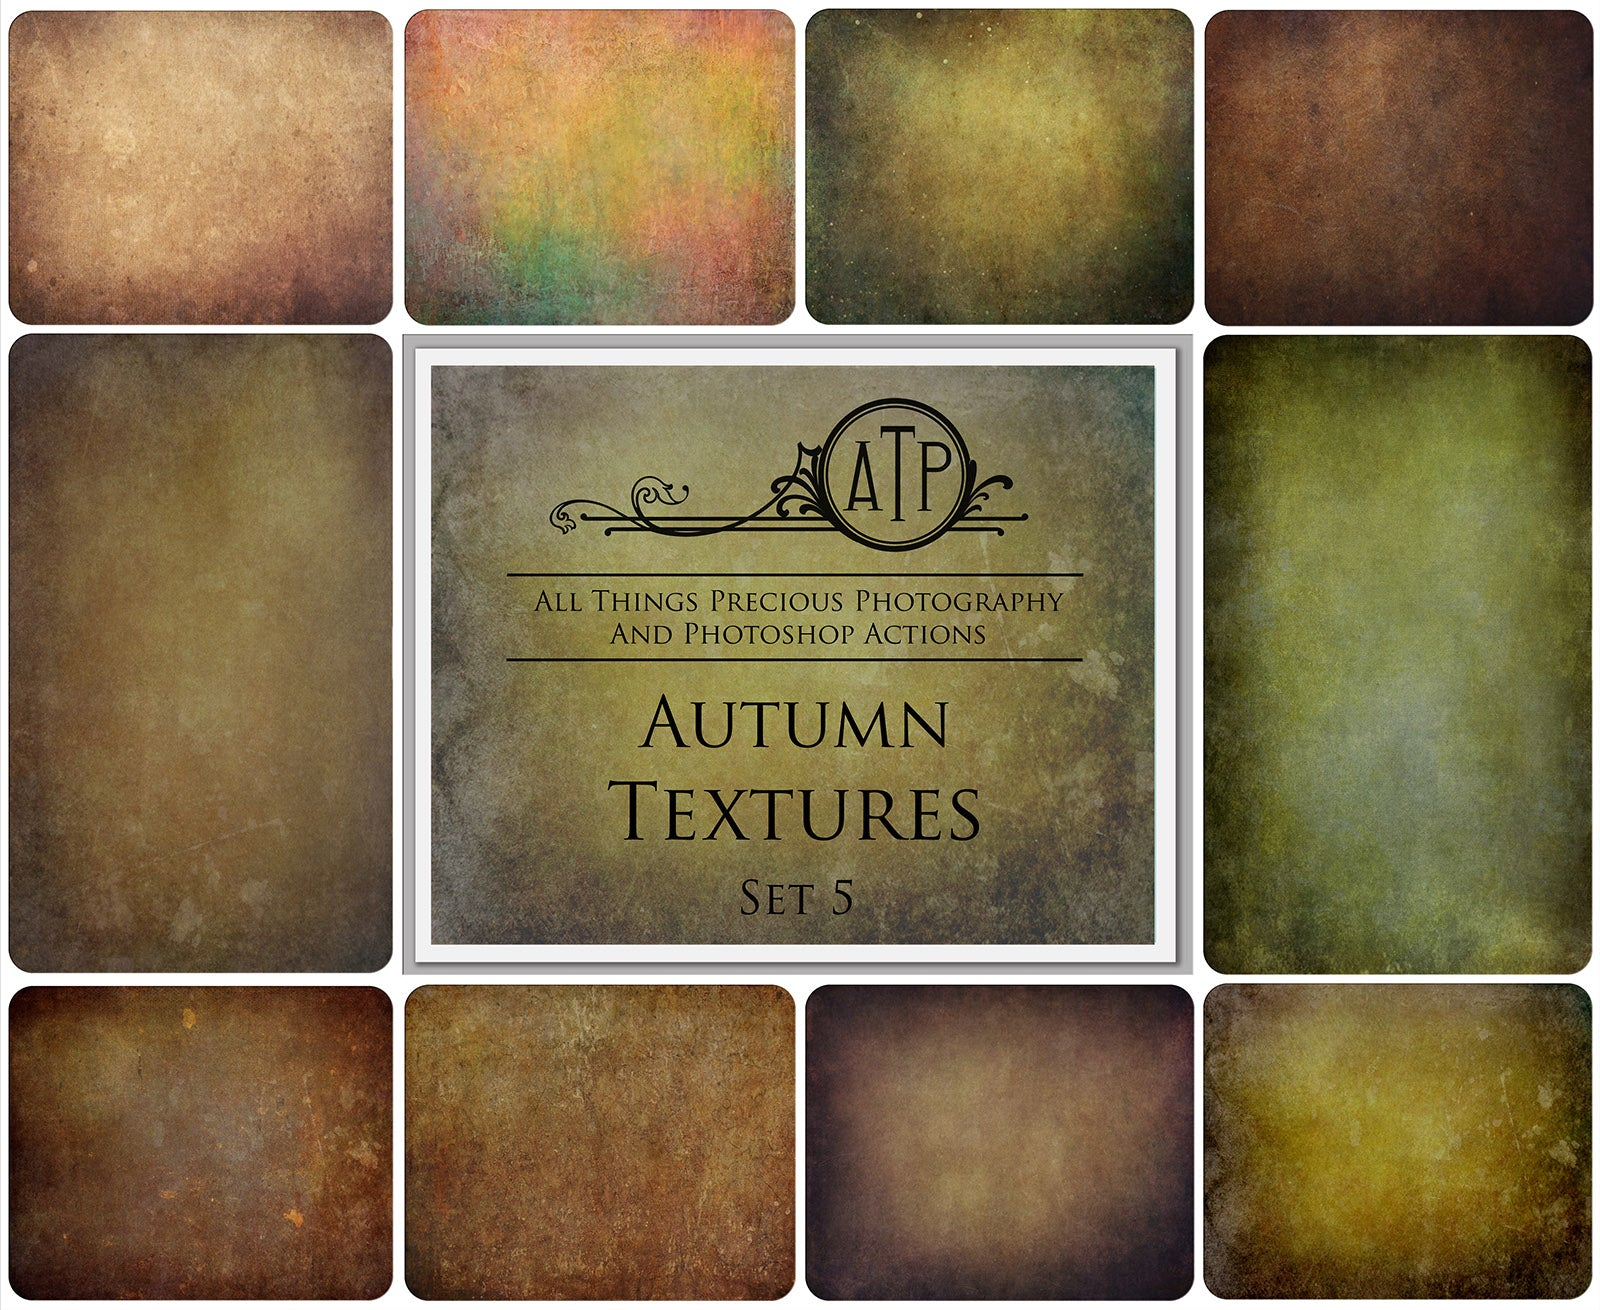 10 Fine Art TEXTURES - AUTUMN / FALL Set 5